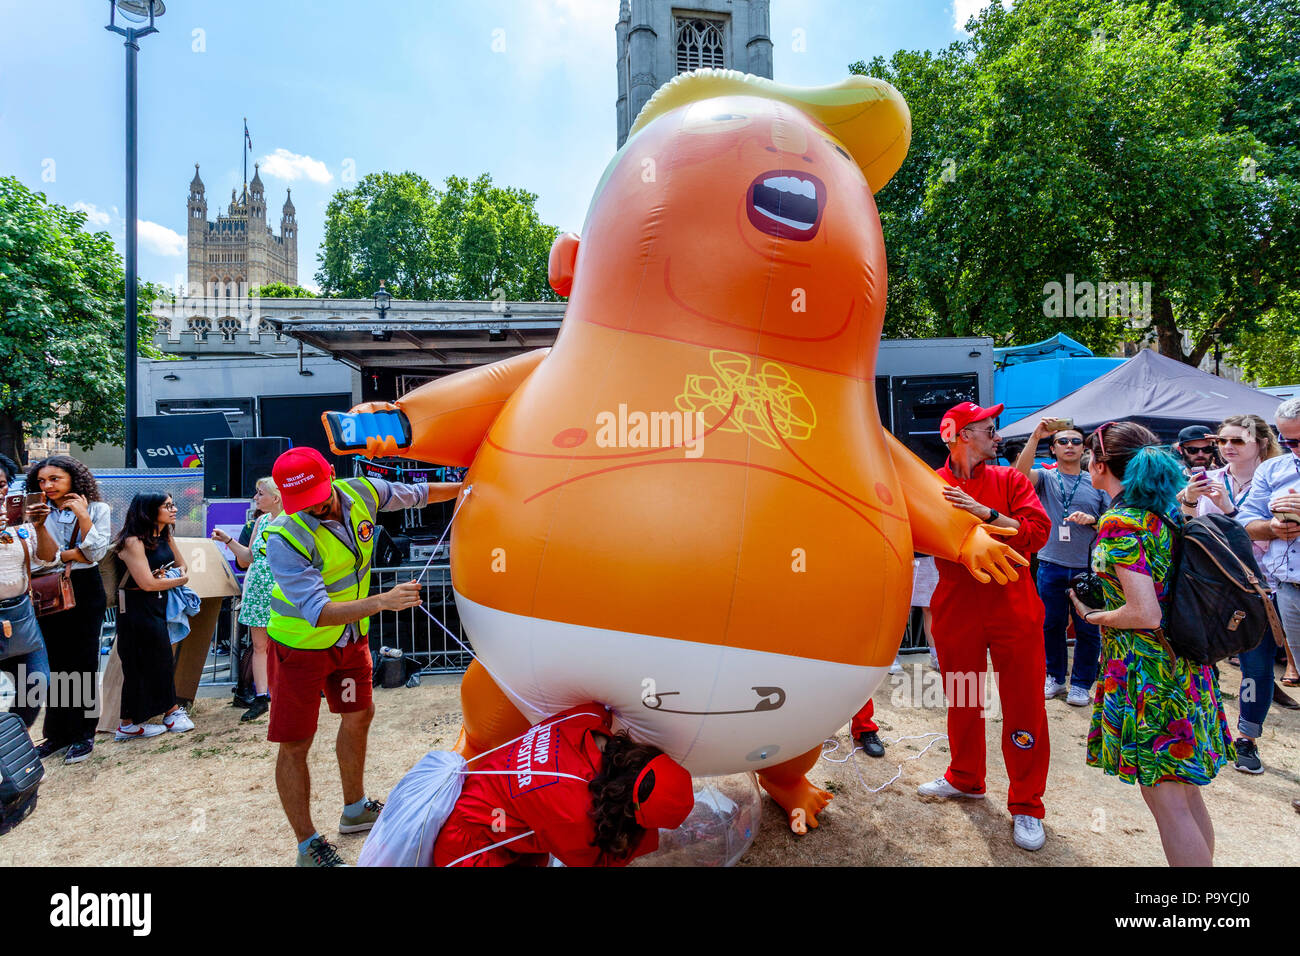 A Group Of Anti Trump Protestors With An 'Angry Baby' Inflatable Blimp, Parliament Square, London, England - Stock Image